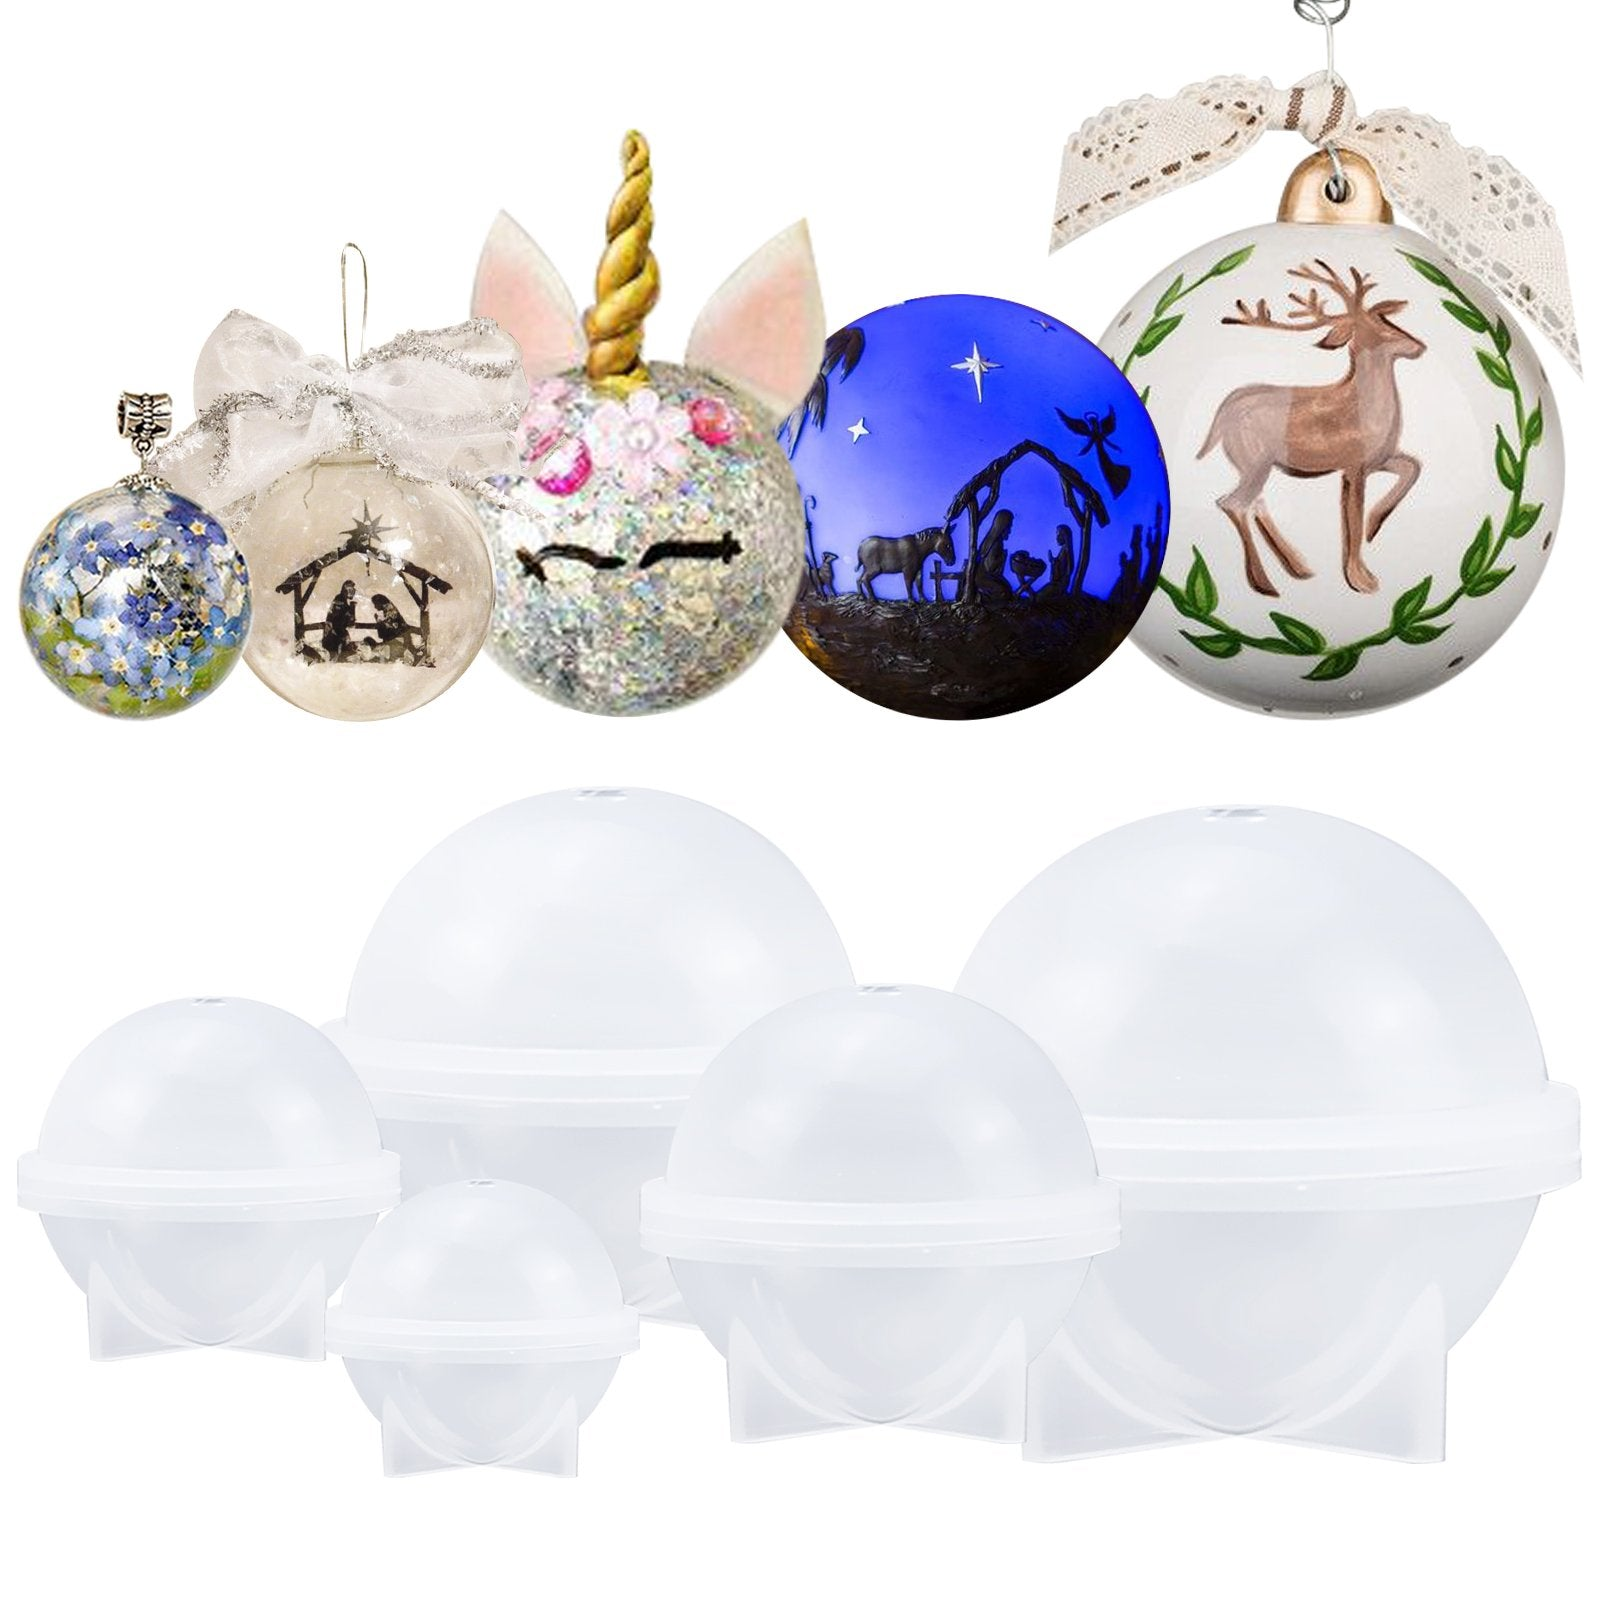 5 Sets DIY Sphere Ball Ornaments Silicone Mold Jewelry Making Resin Mould